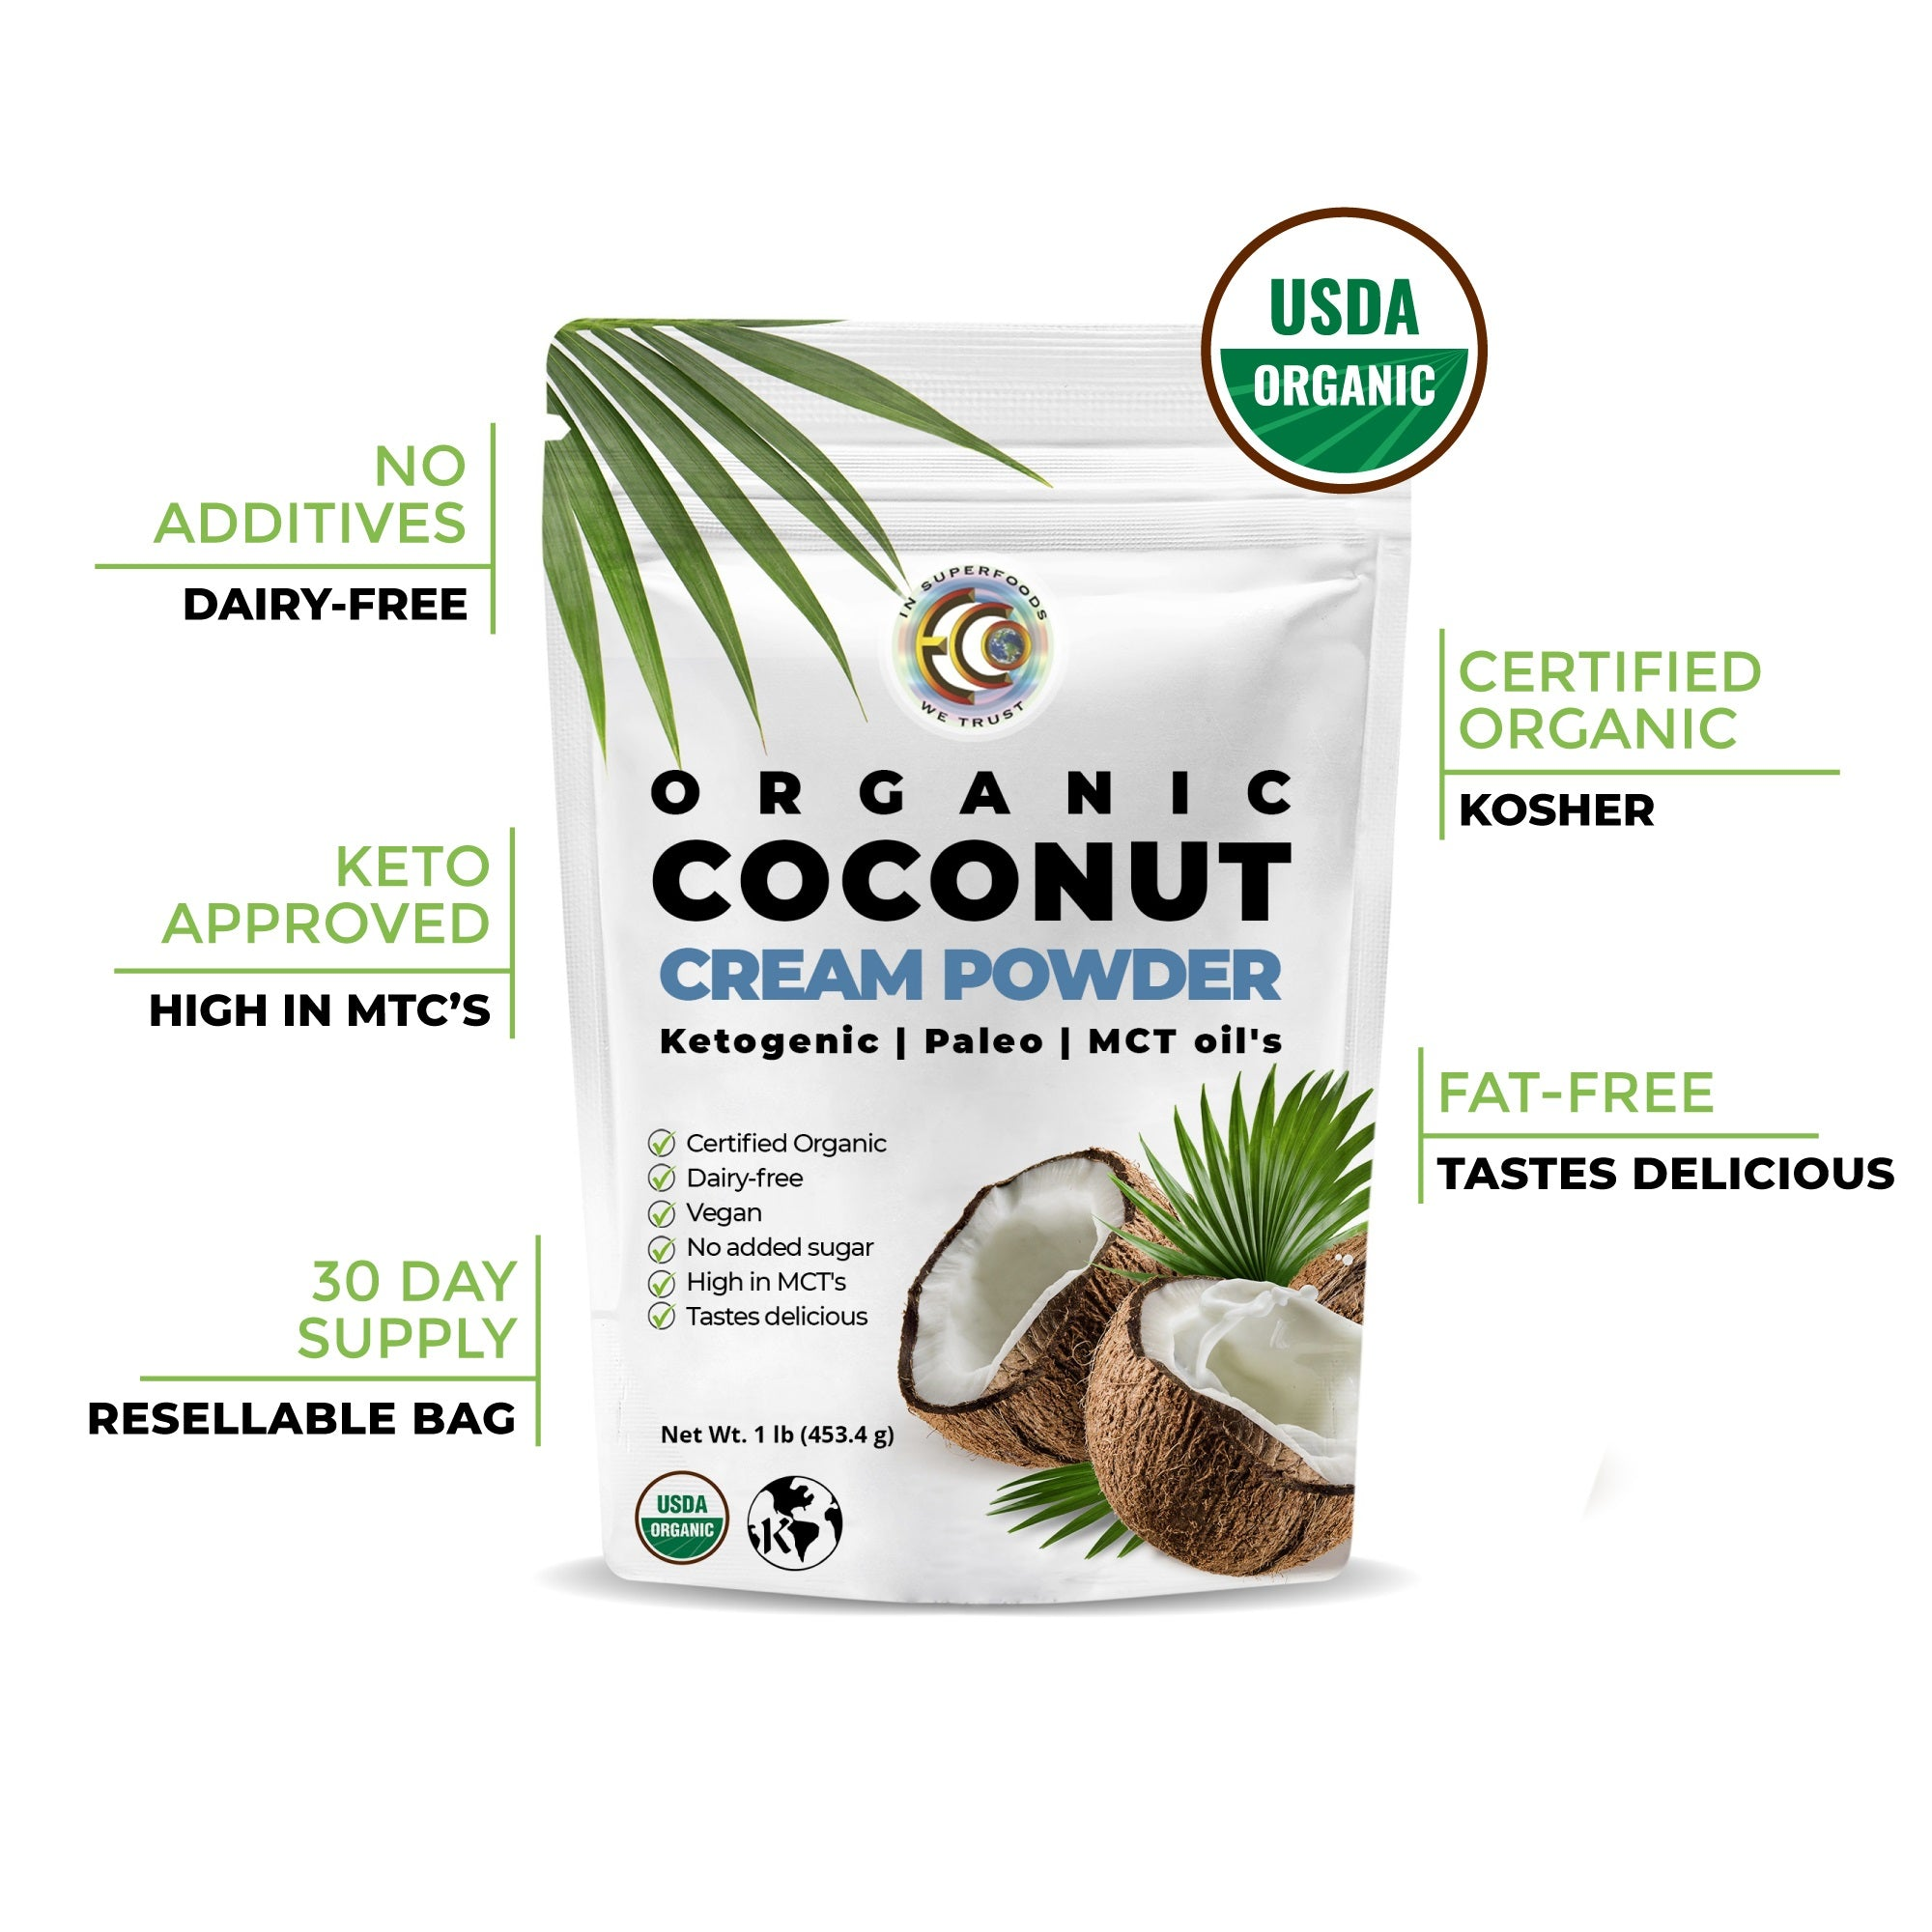 Coconut Cream Powder | USDA Certified Organic | Kosher  - 1 pound